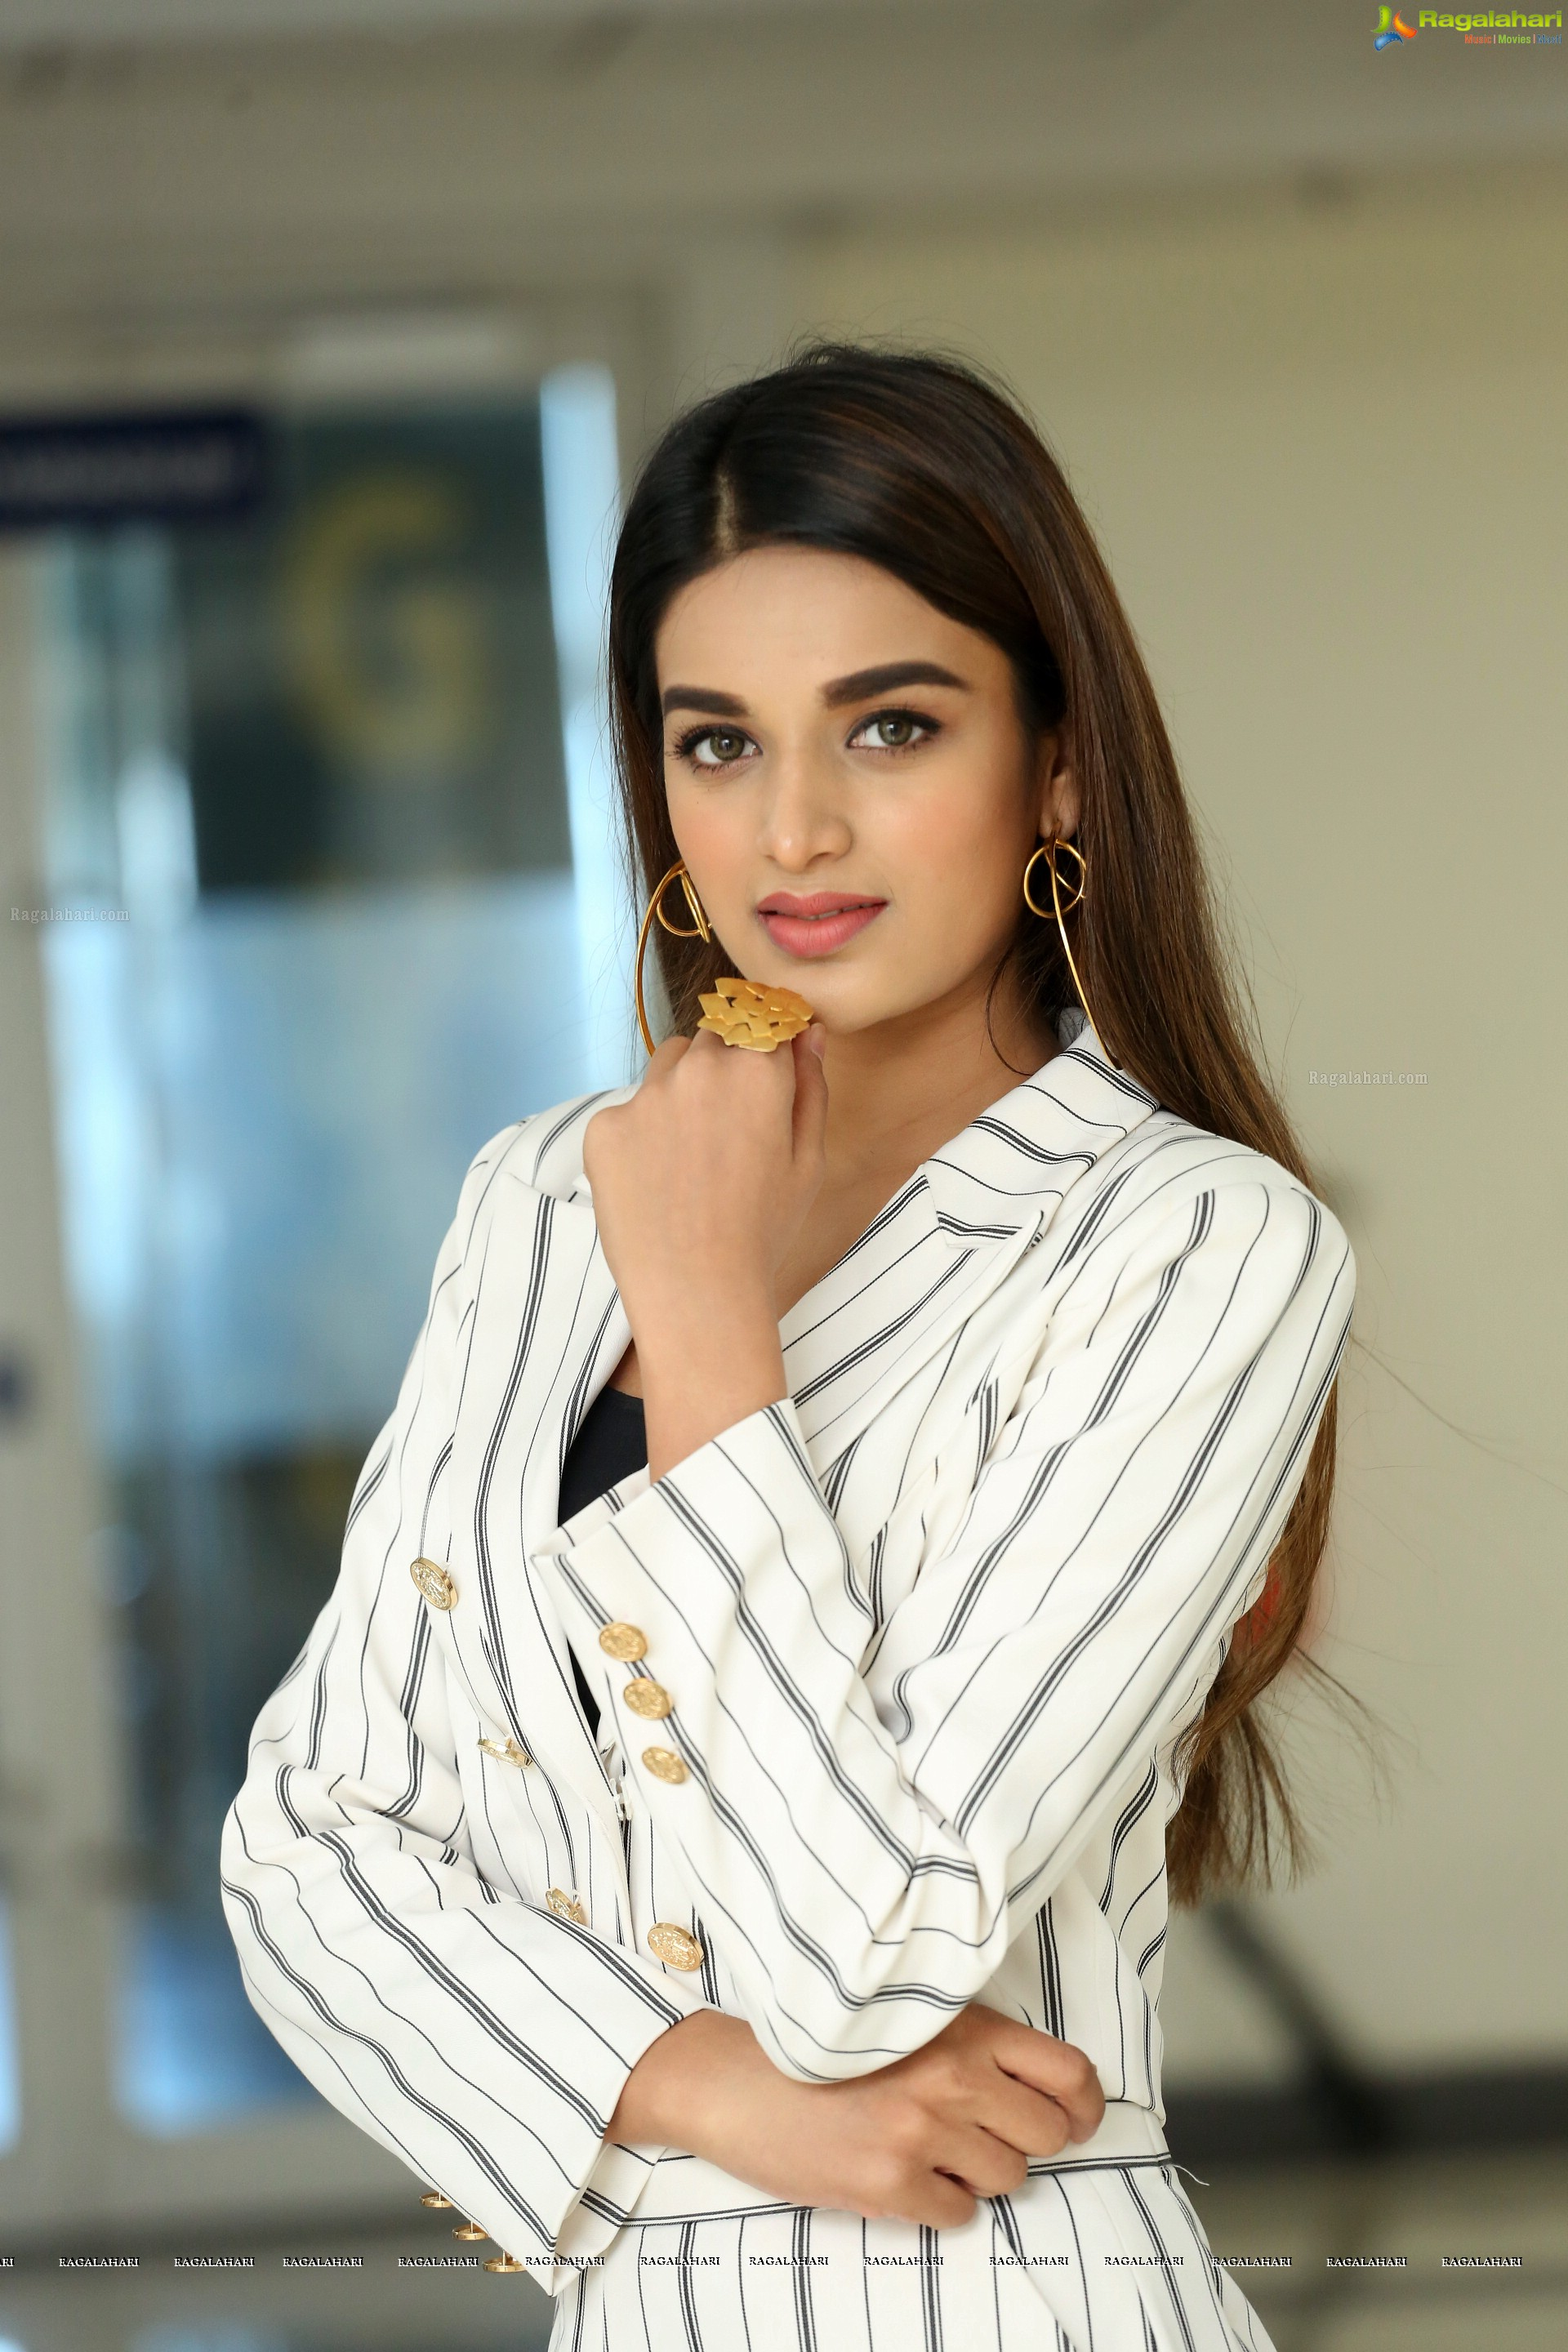 Forum on this topic: Tig Notaro, nidhhi-agerwal/